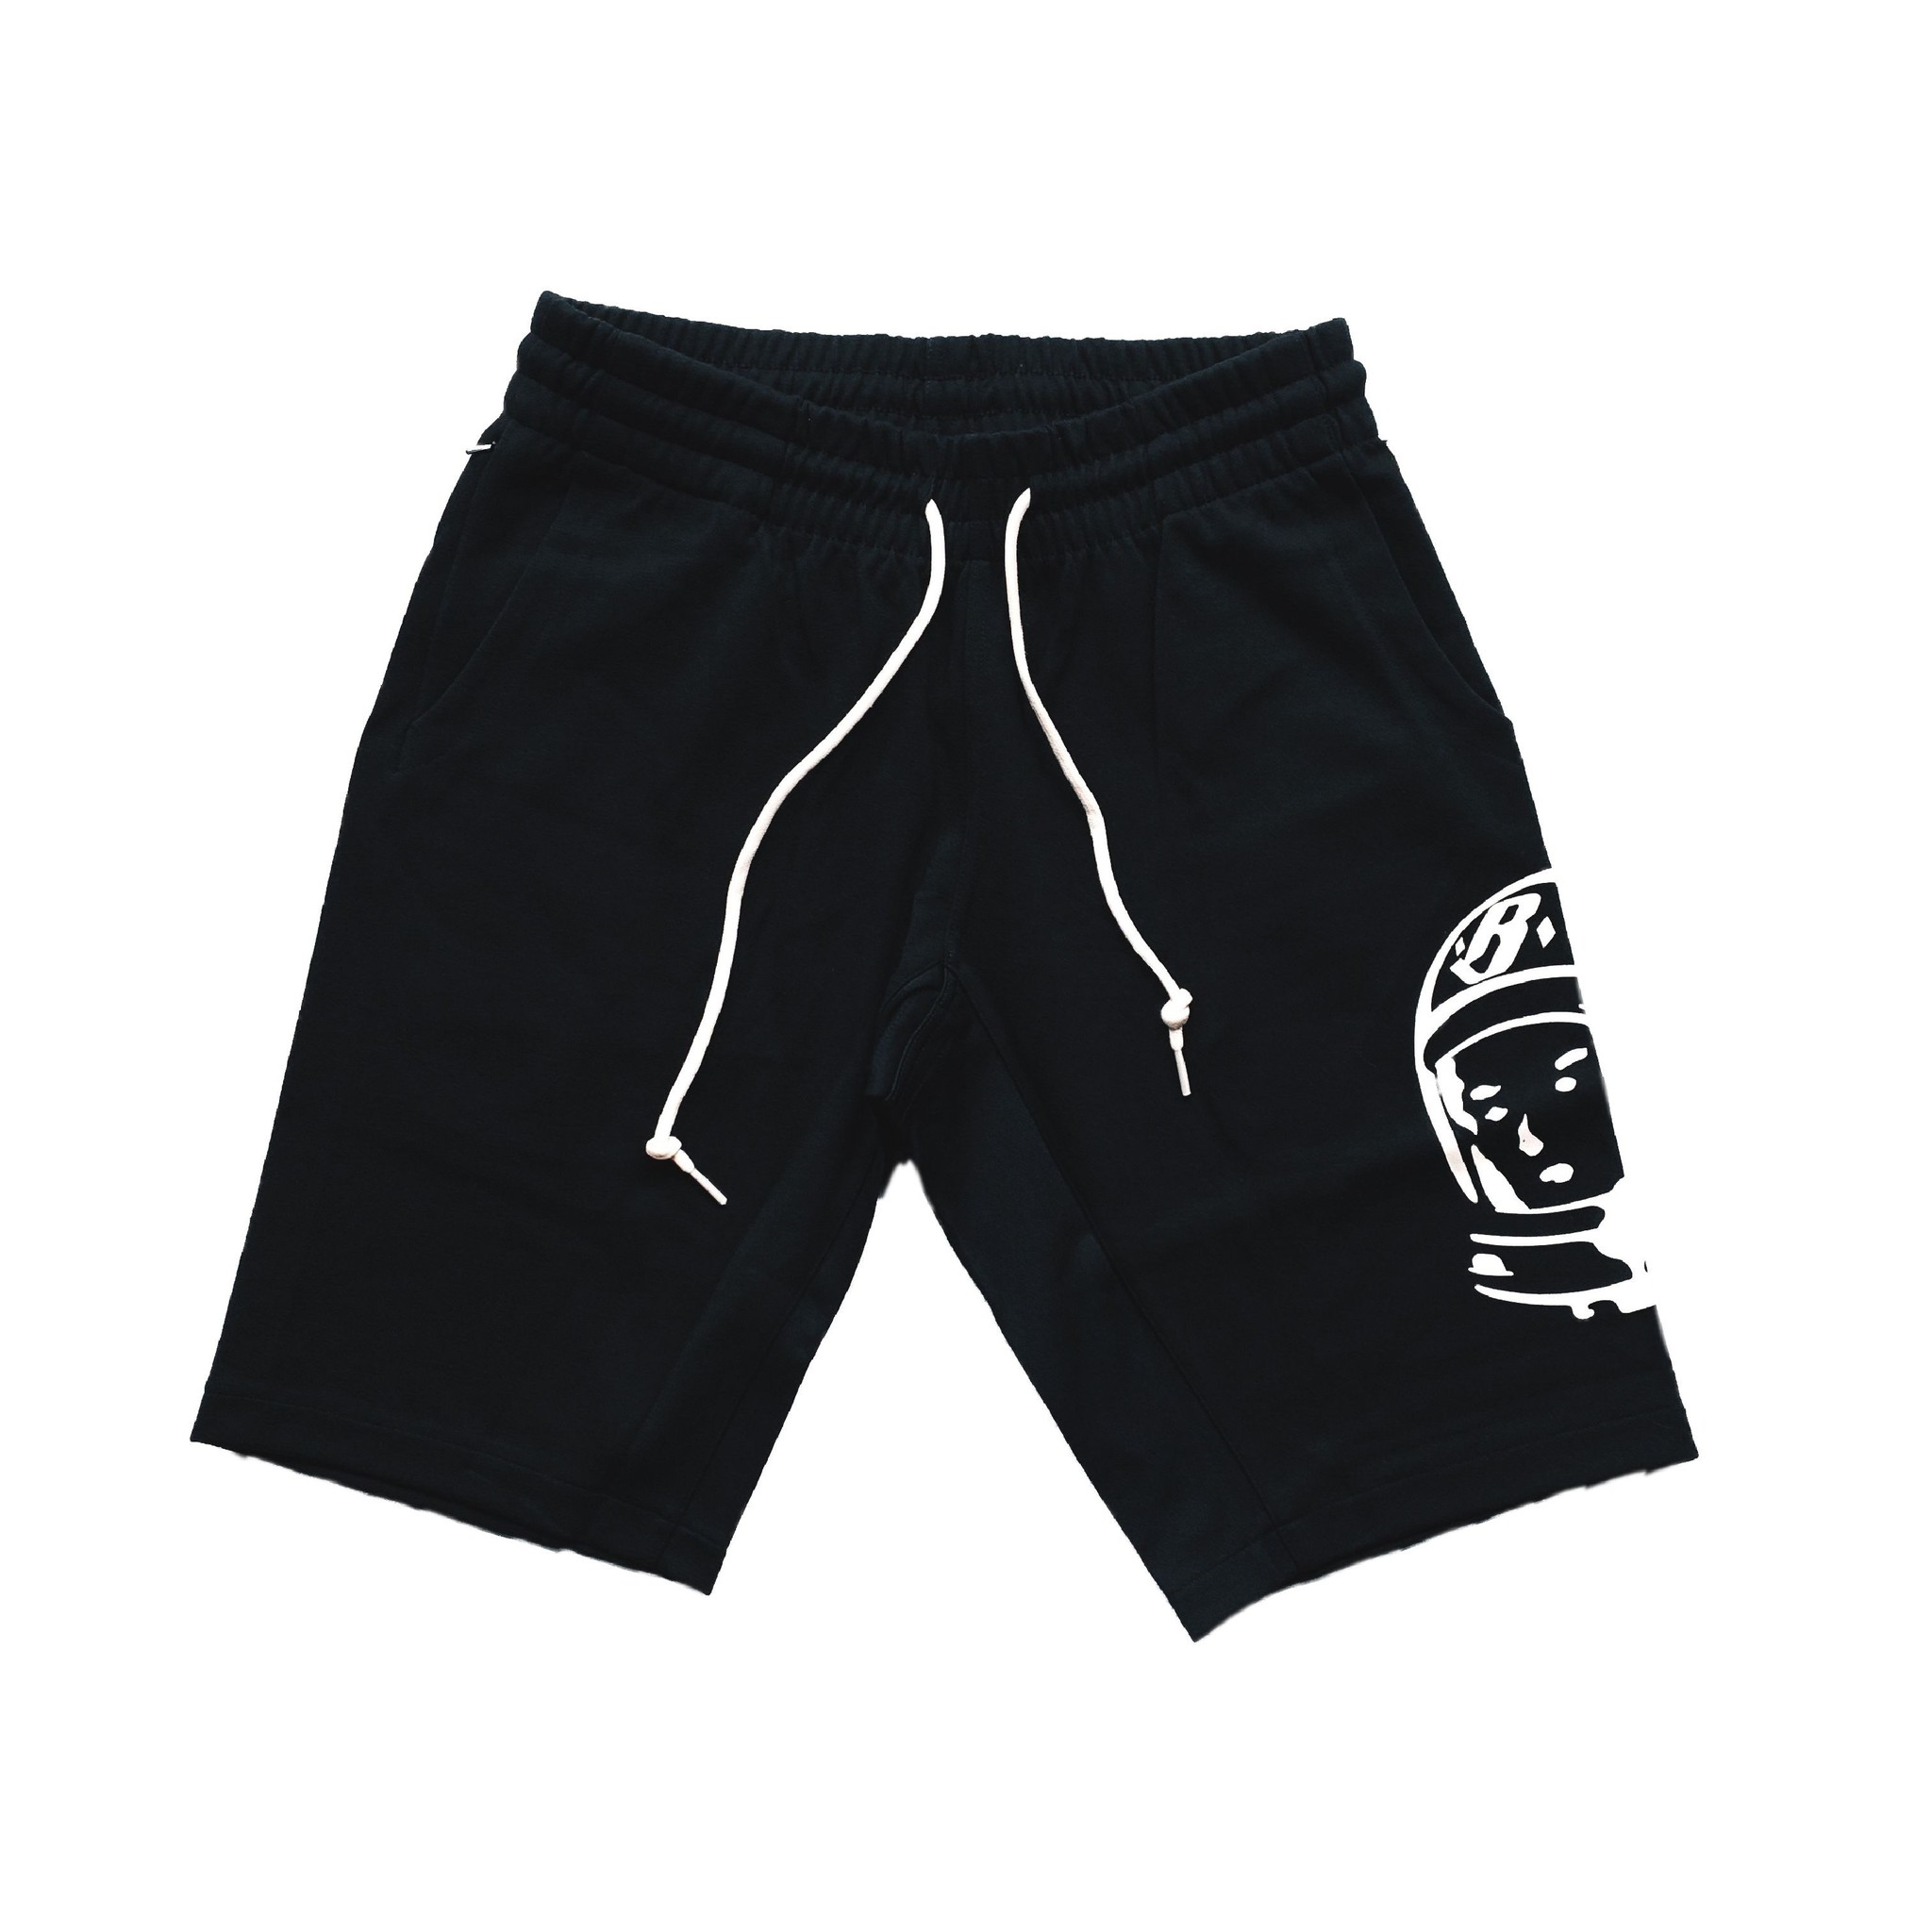 BBC BBC Big Helmet Short Black